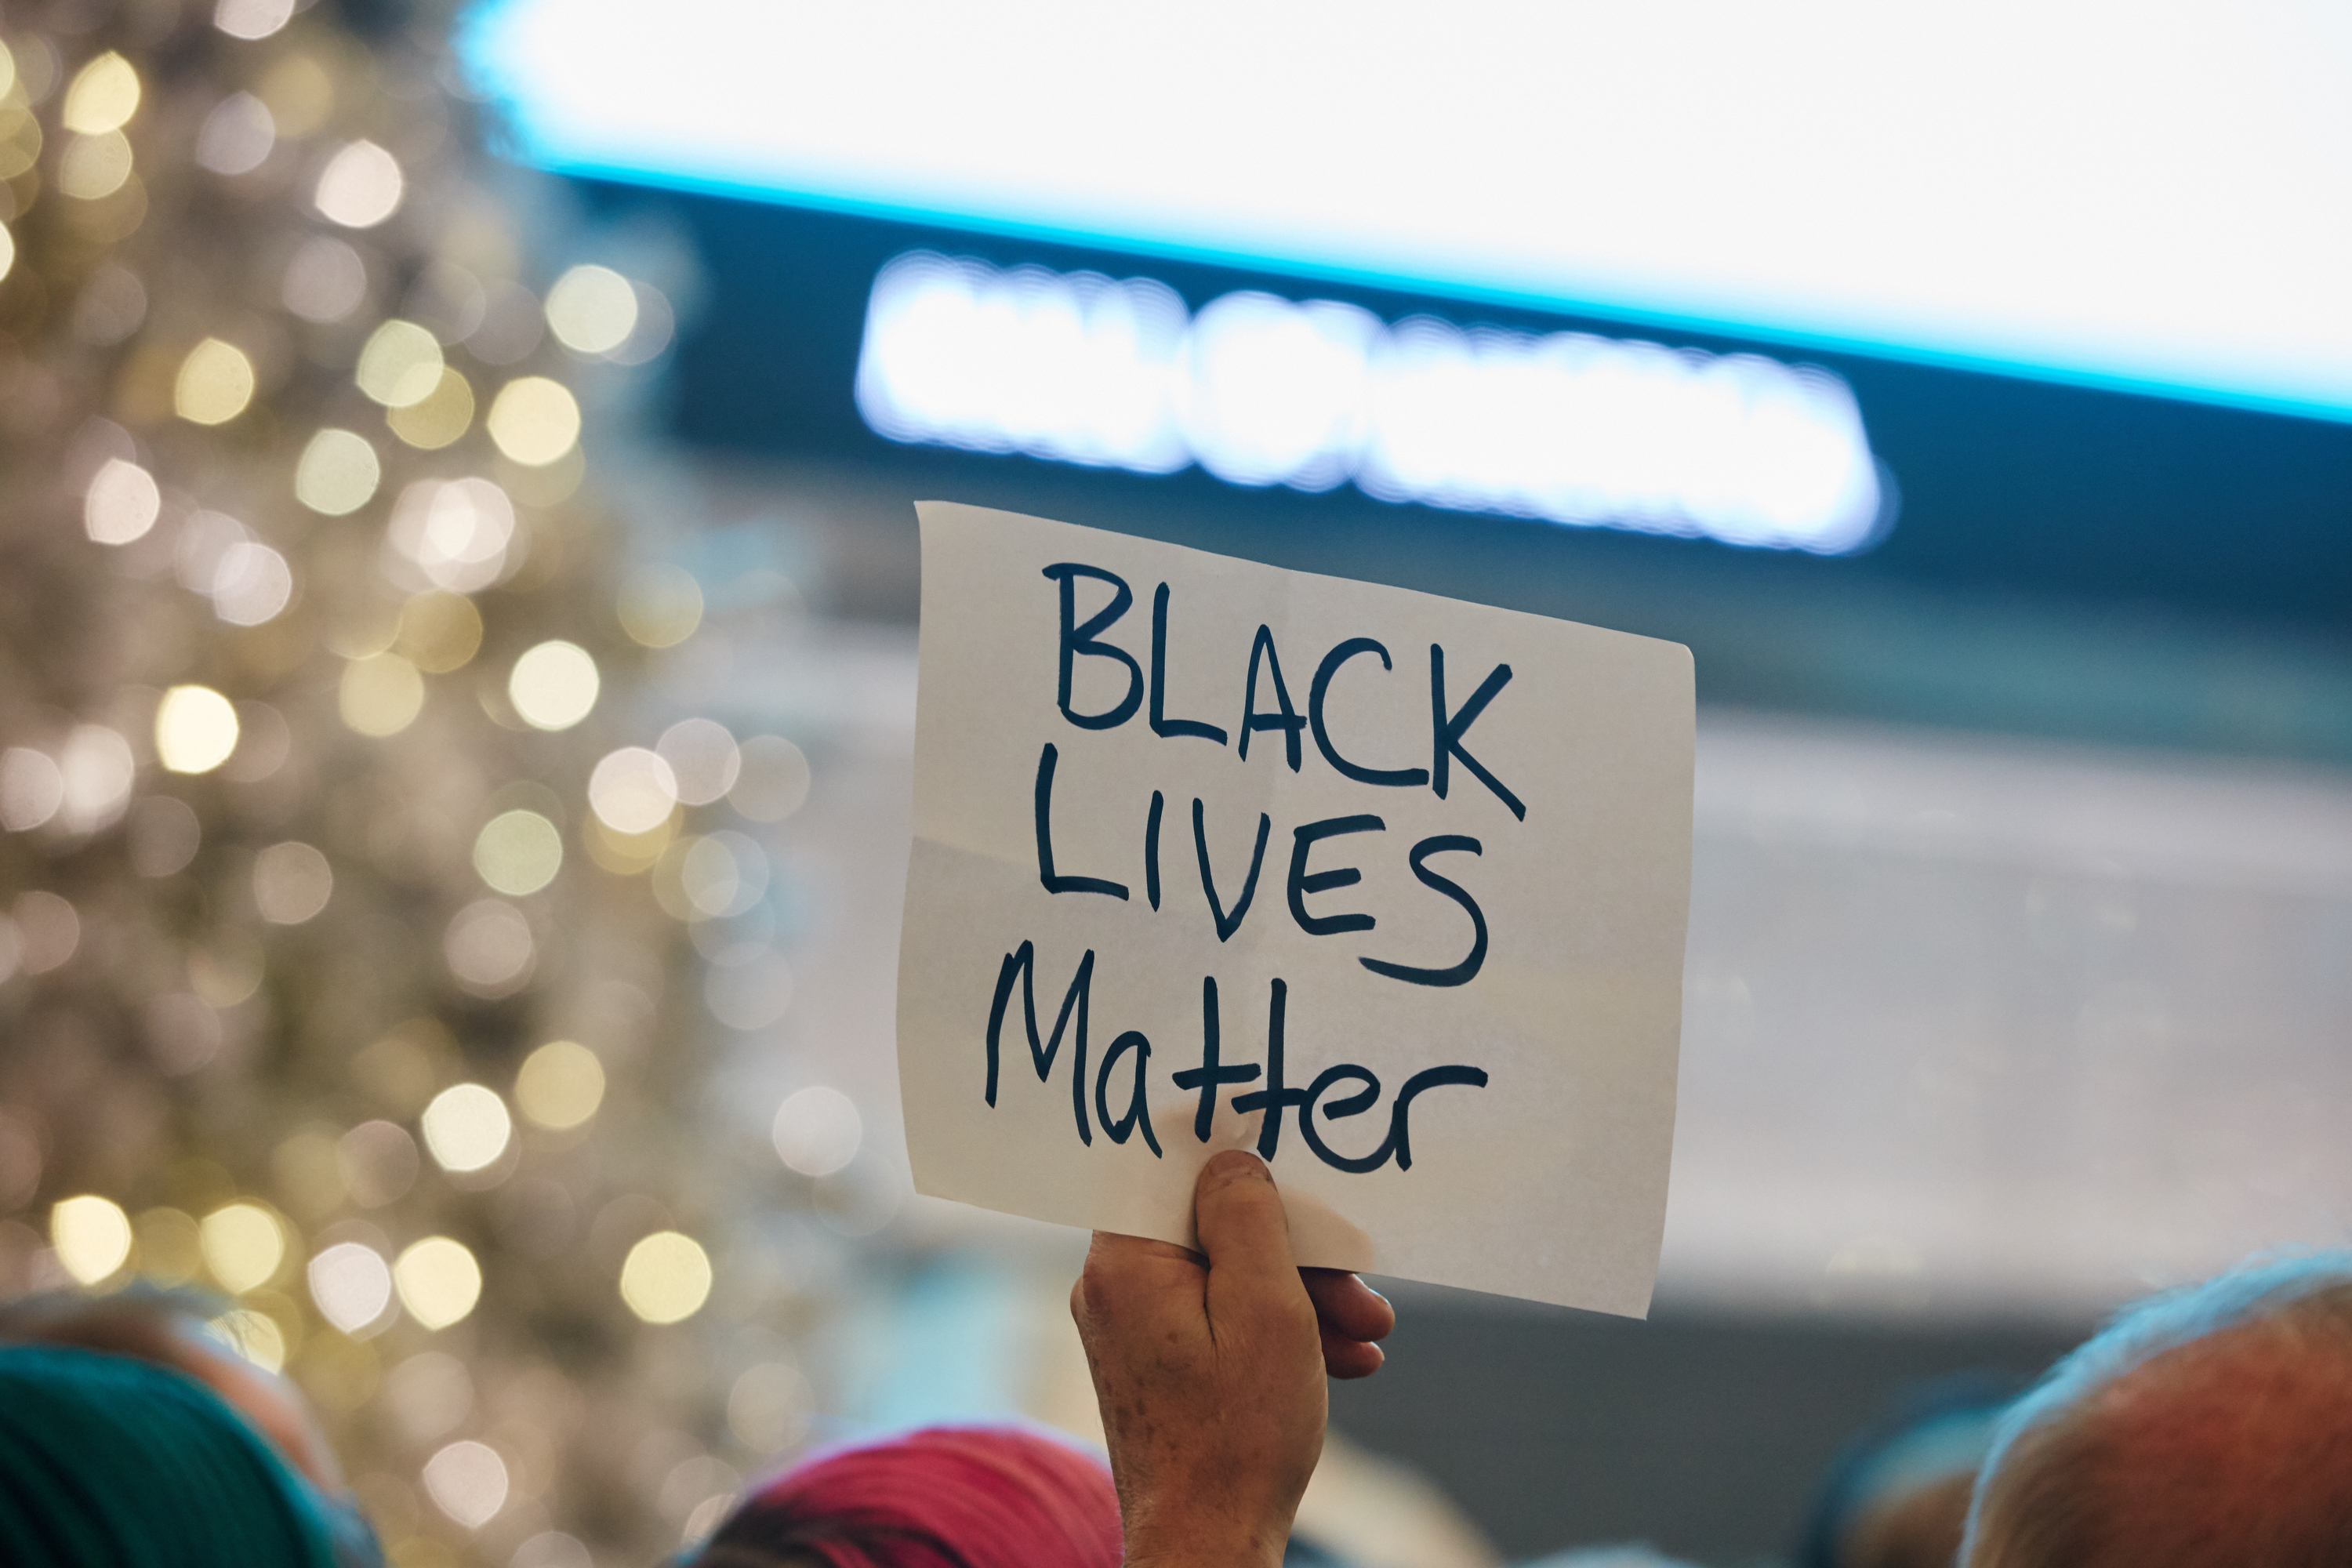 Thousands of protesters from the group  Black Lives Matter  disrupt holiday shoppers on Dec. 20, 2014 at Mall of America in Bloomington, Minn.